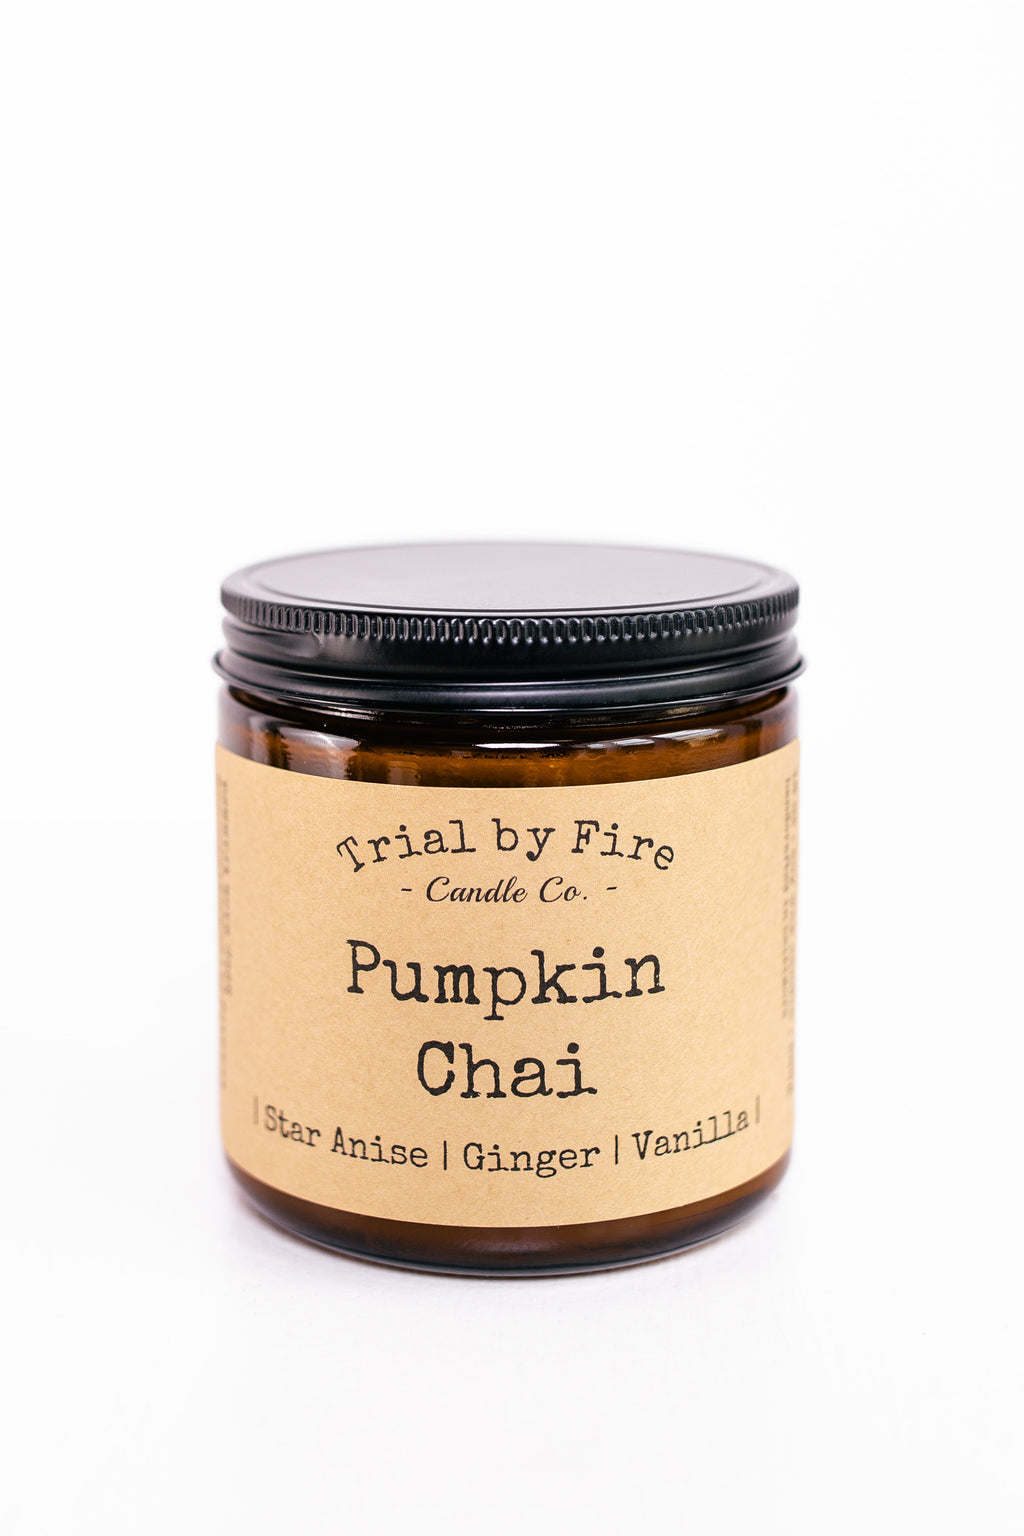 Pumpkin Chai 16oz. Candle